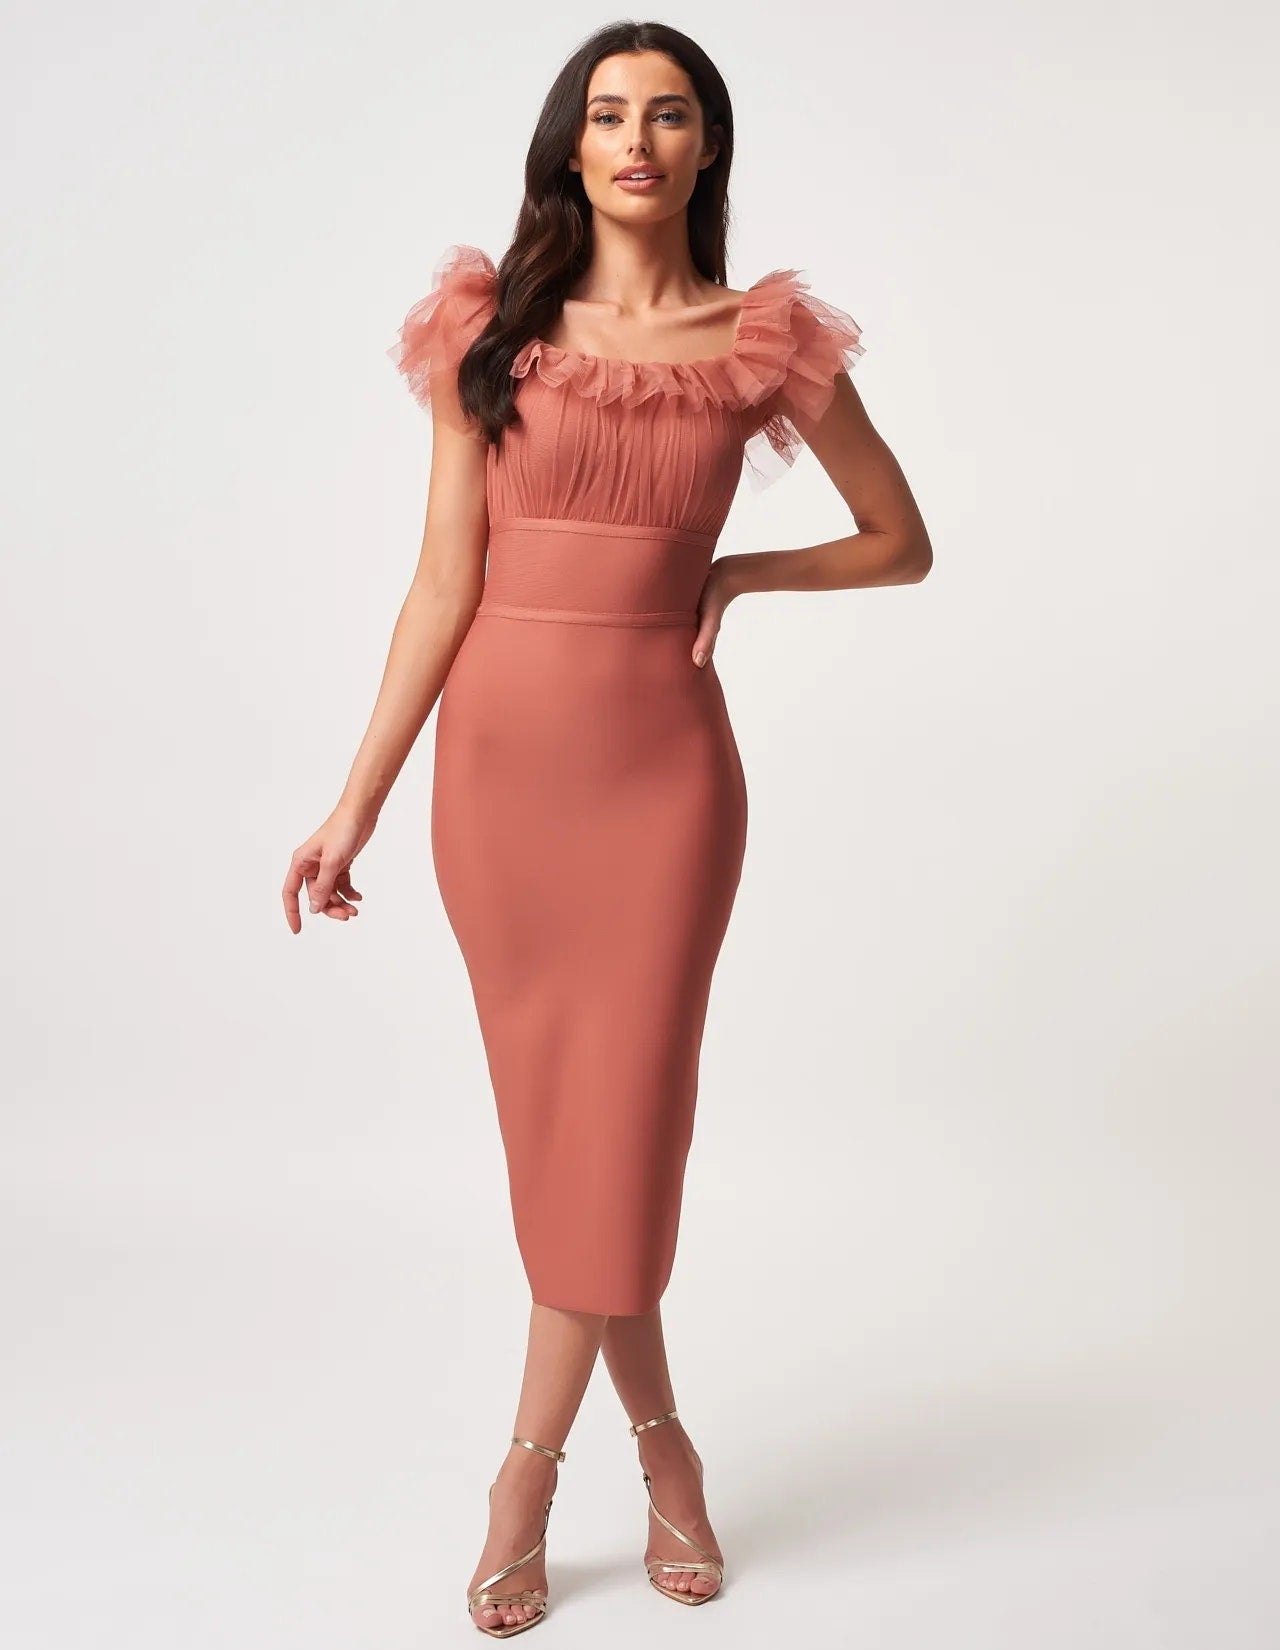 FIODORA Strapless Tull Banadage Dress